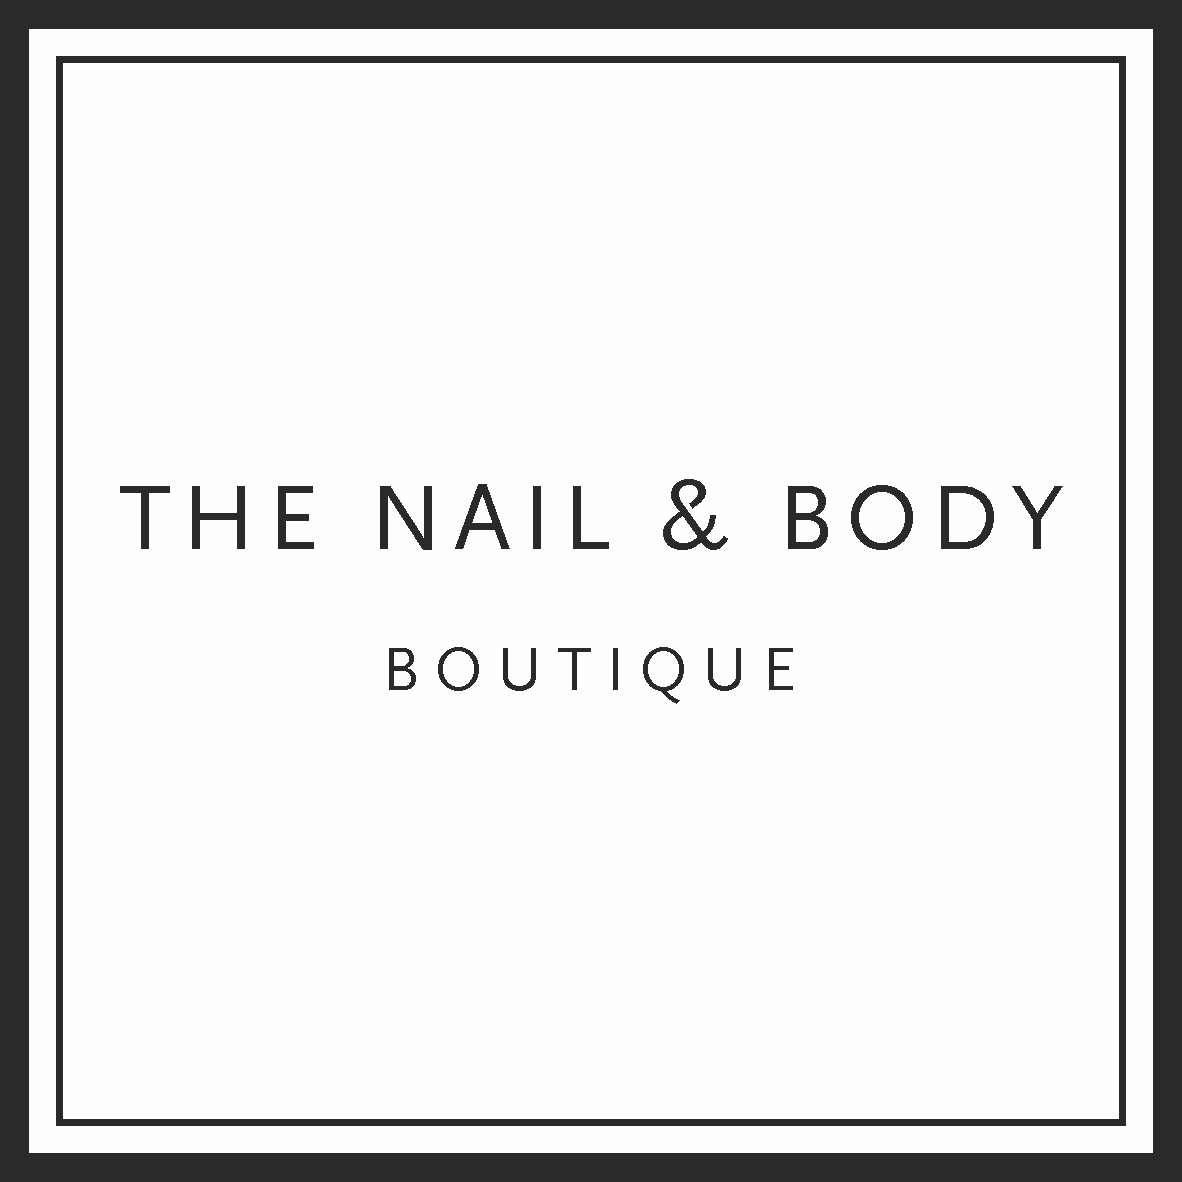 The Nail & Body Boutique logo